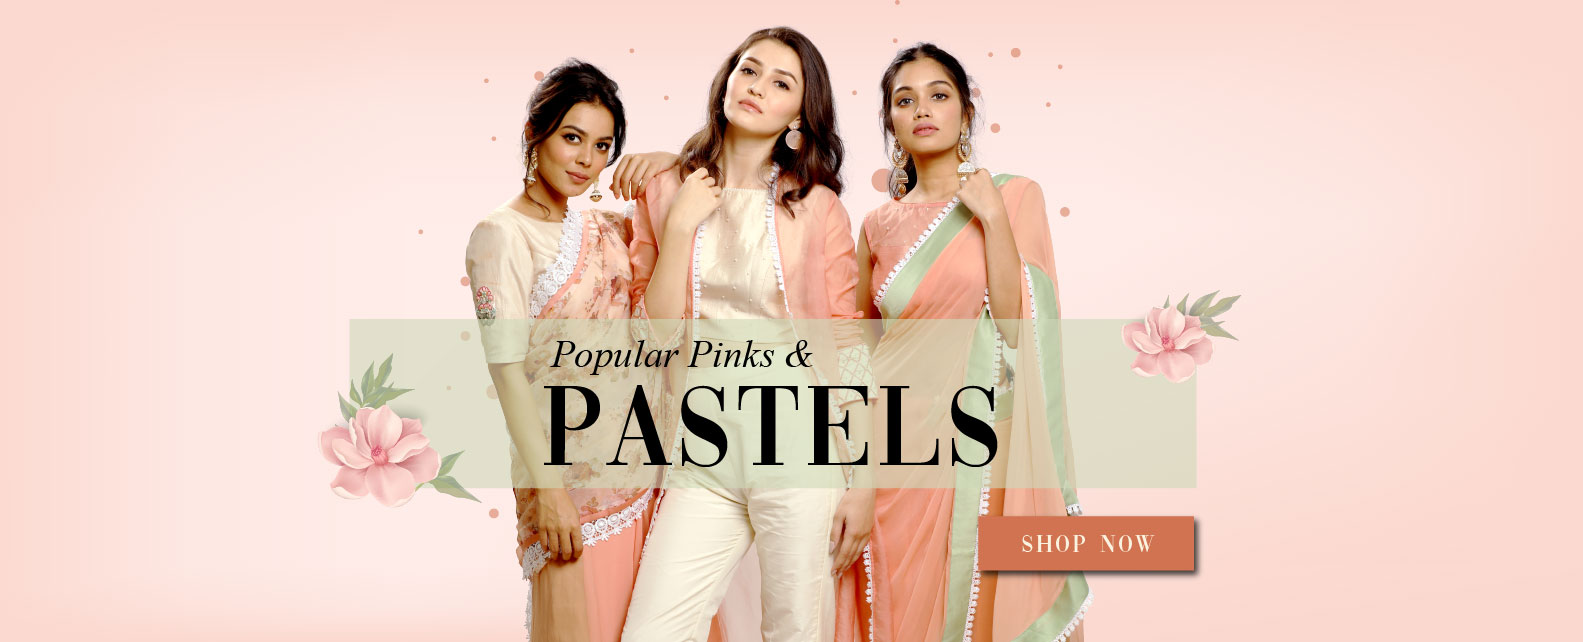 Popular Pinks and Pastels